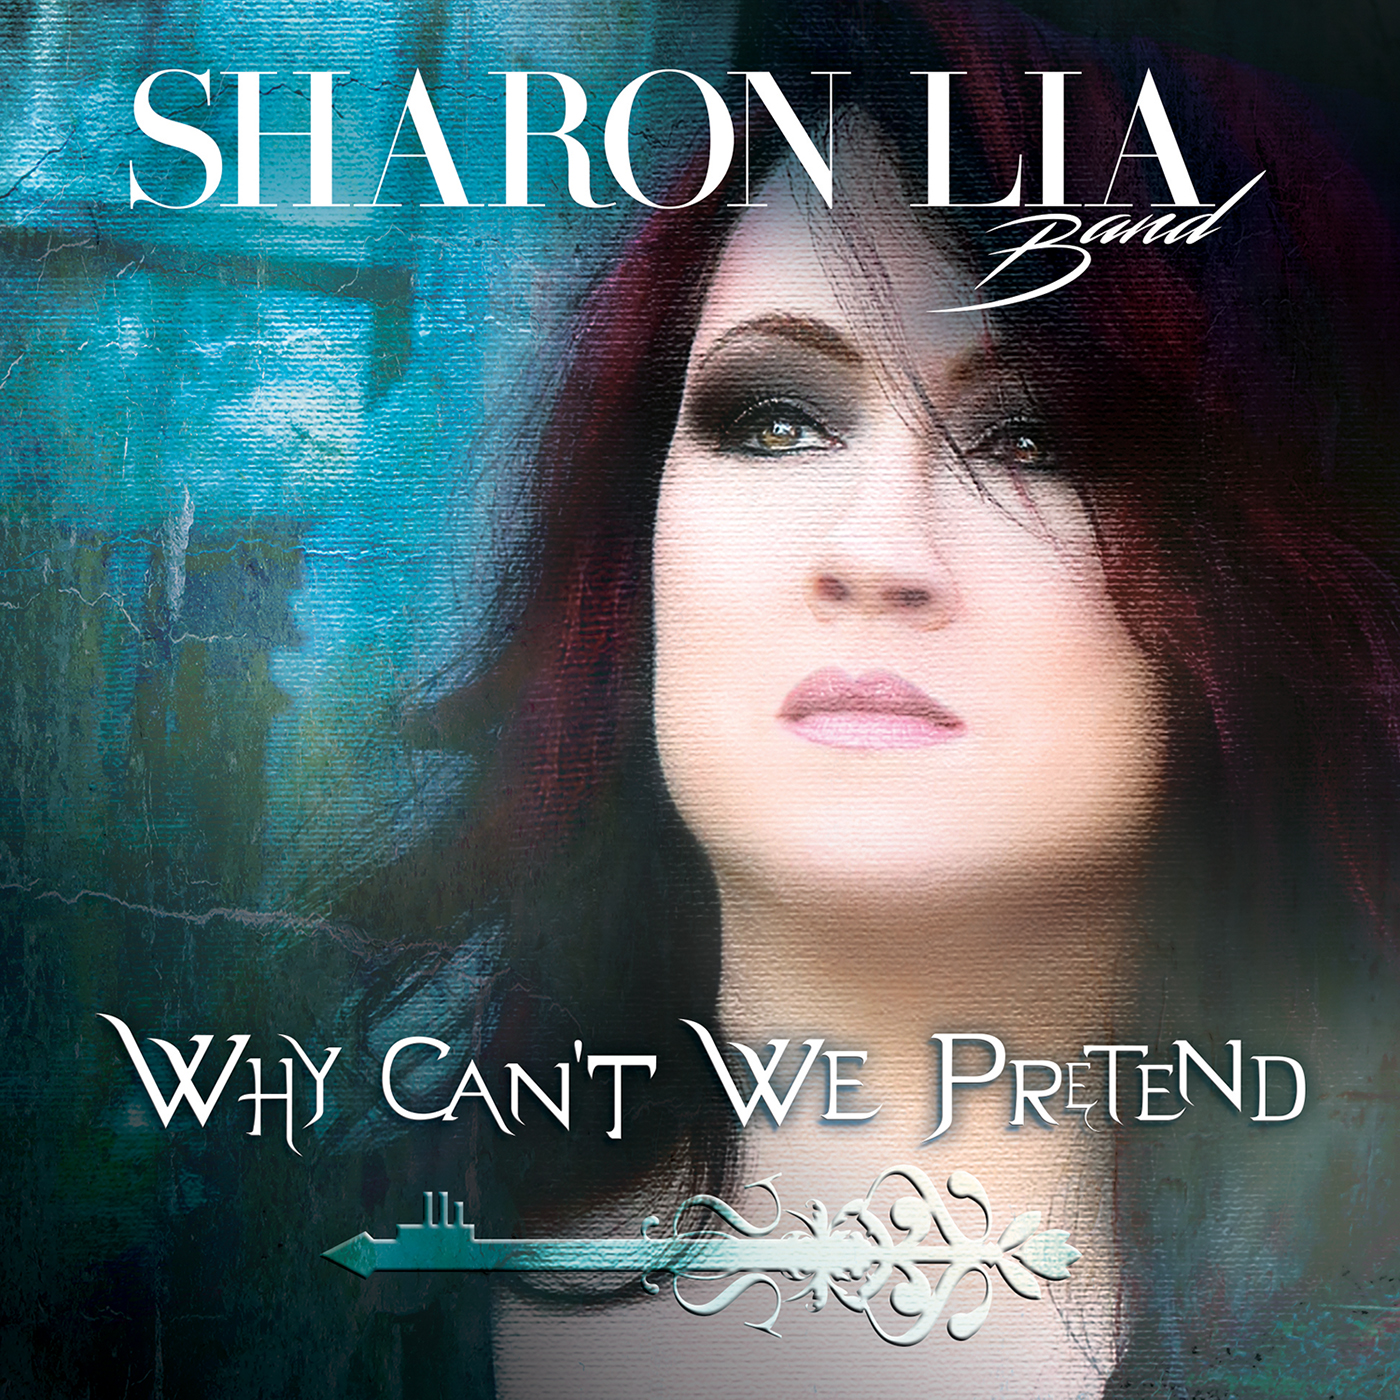 Why Can't We Pretend by Sharon Lia Band single artwork